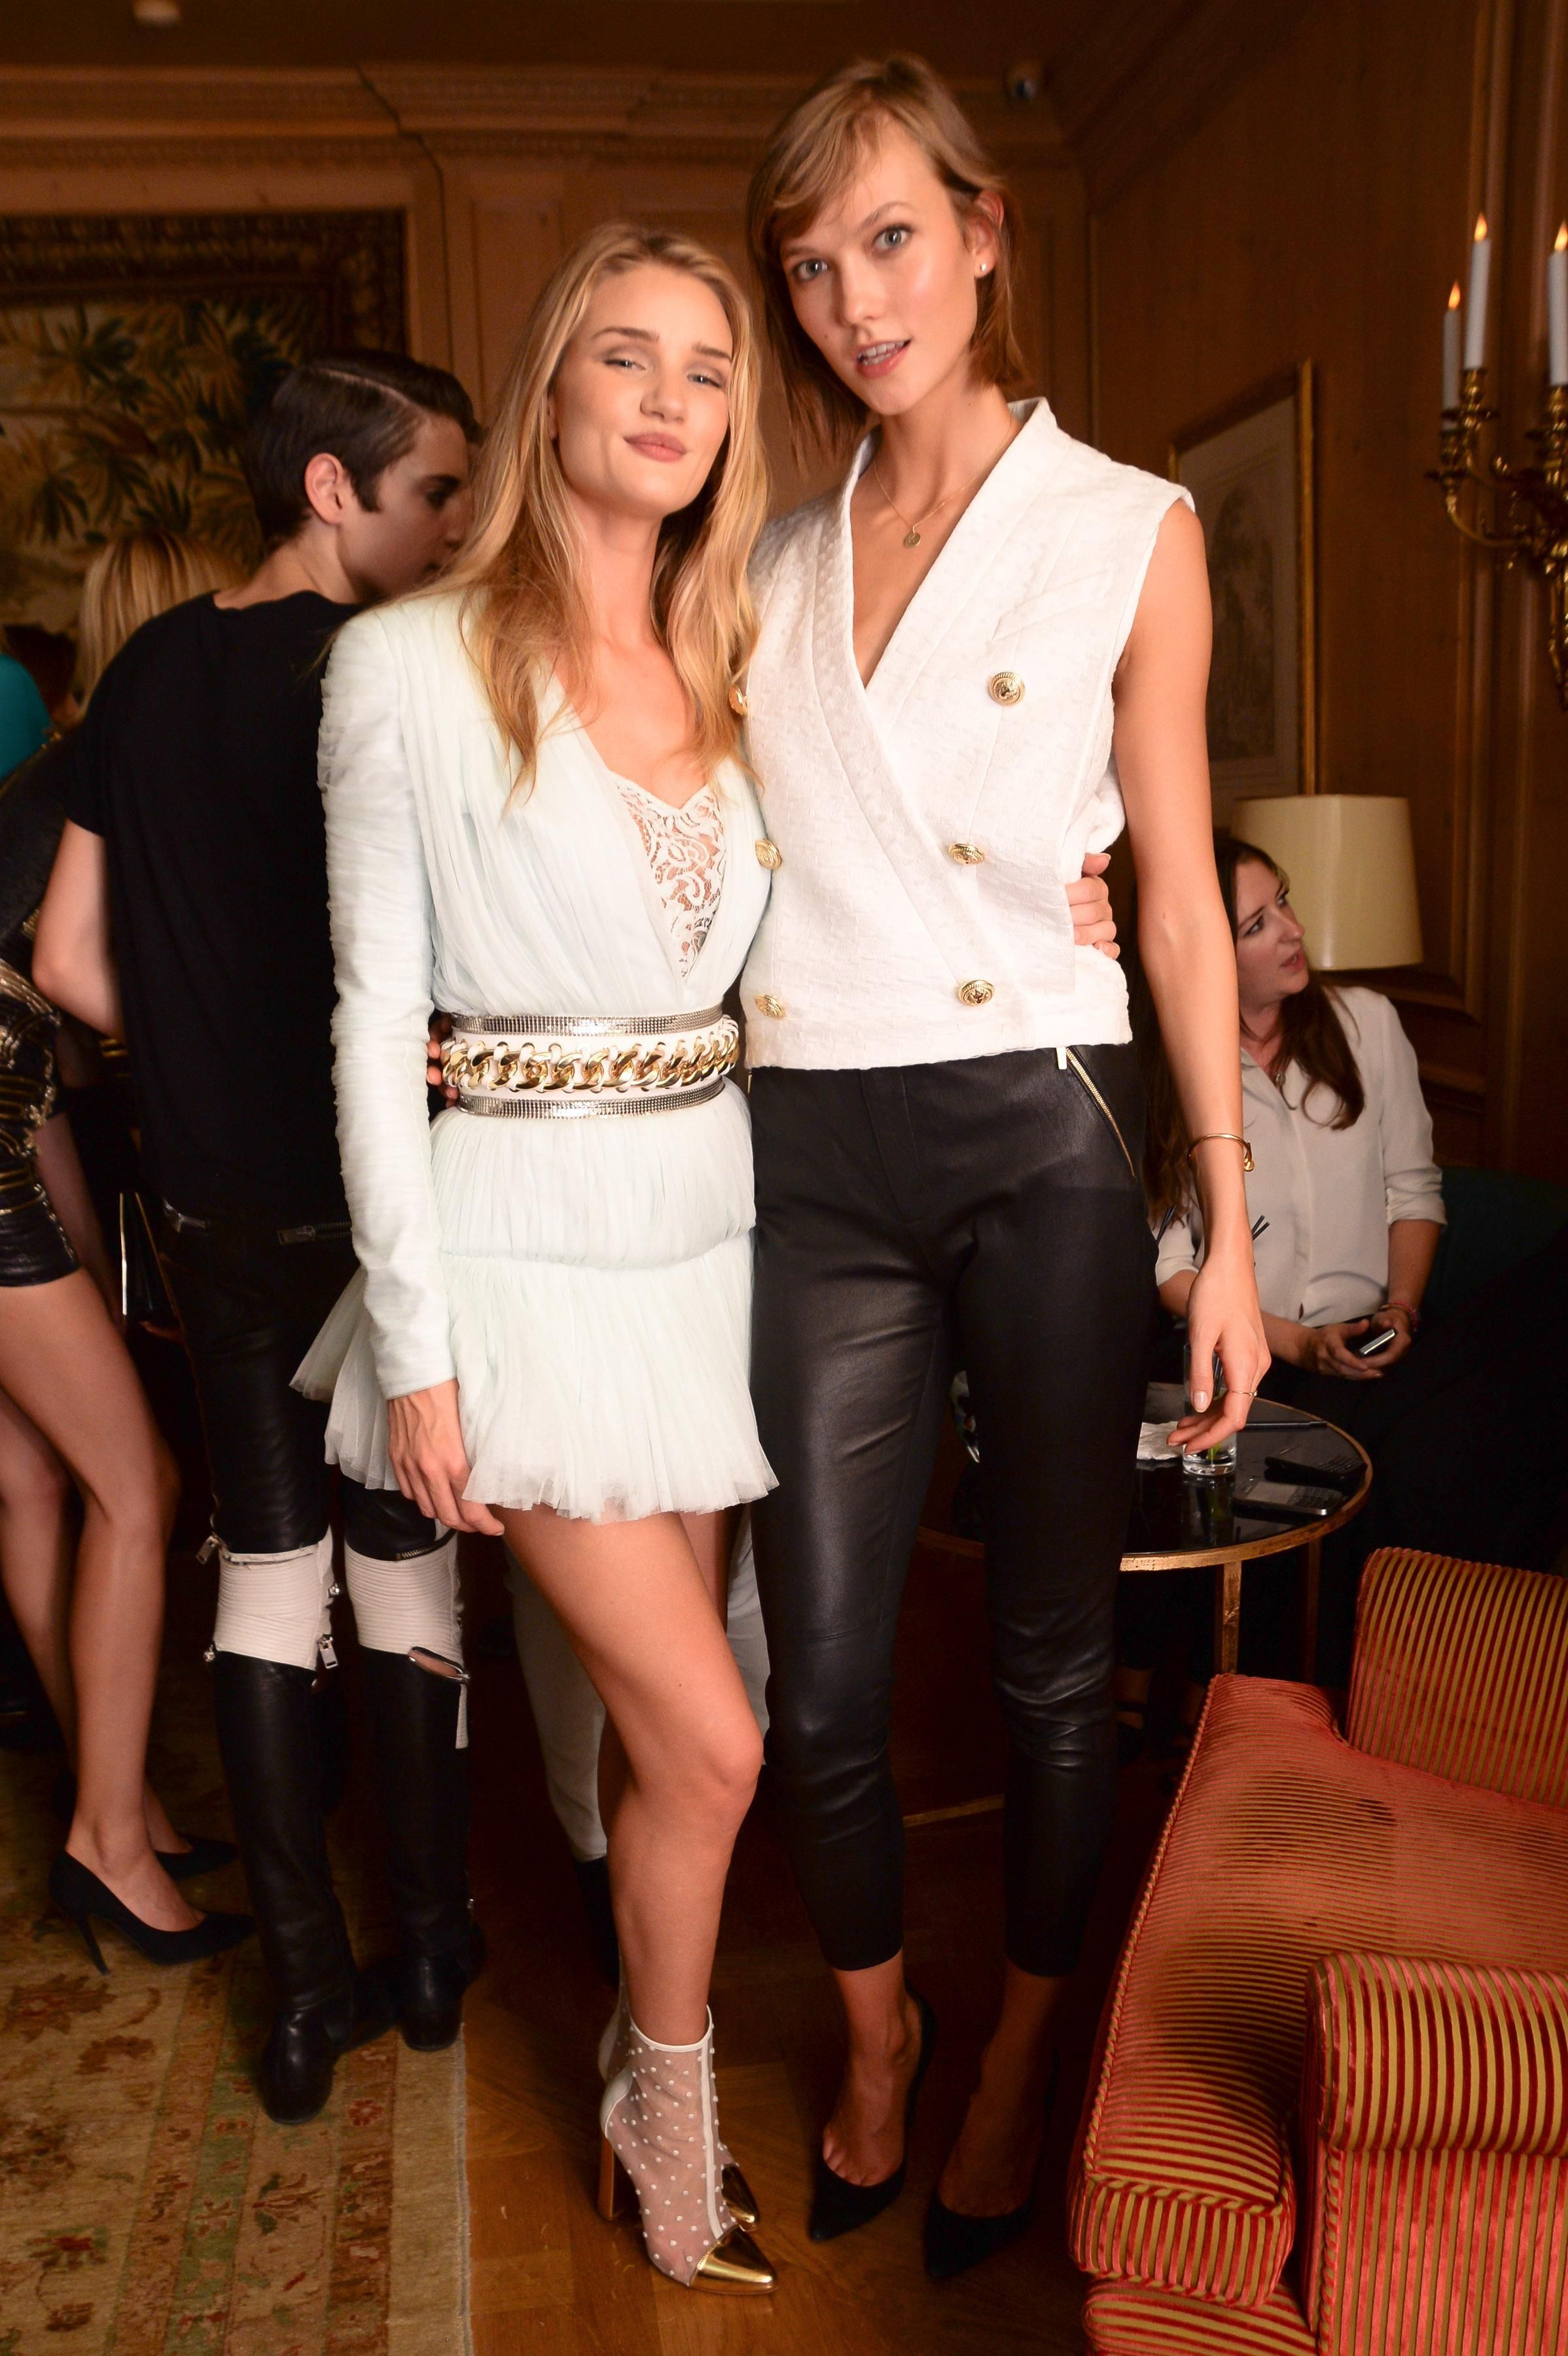 a104832707 Rosie Huntington-Whiteley and Karlie Kloss at #pfw #ss14 | The Best ...